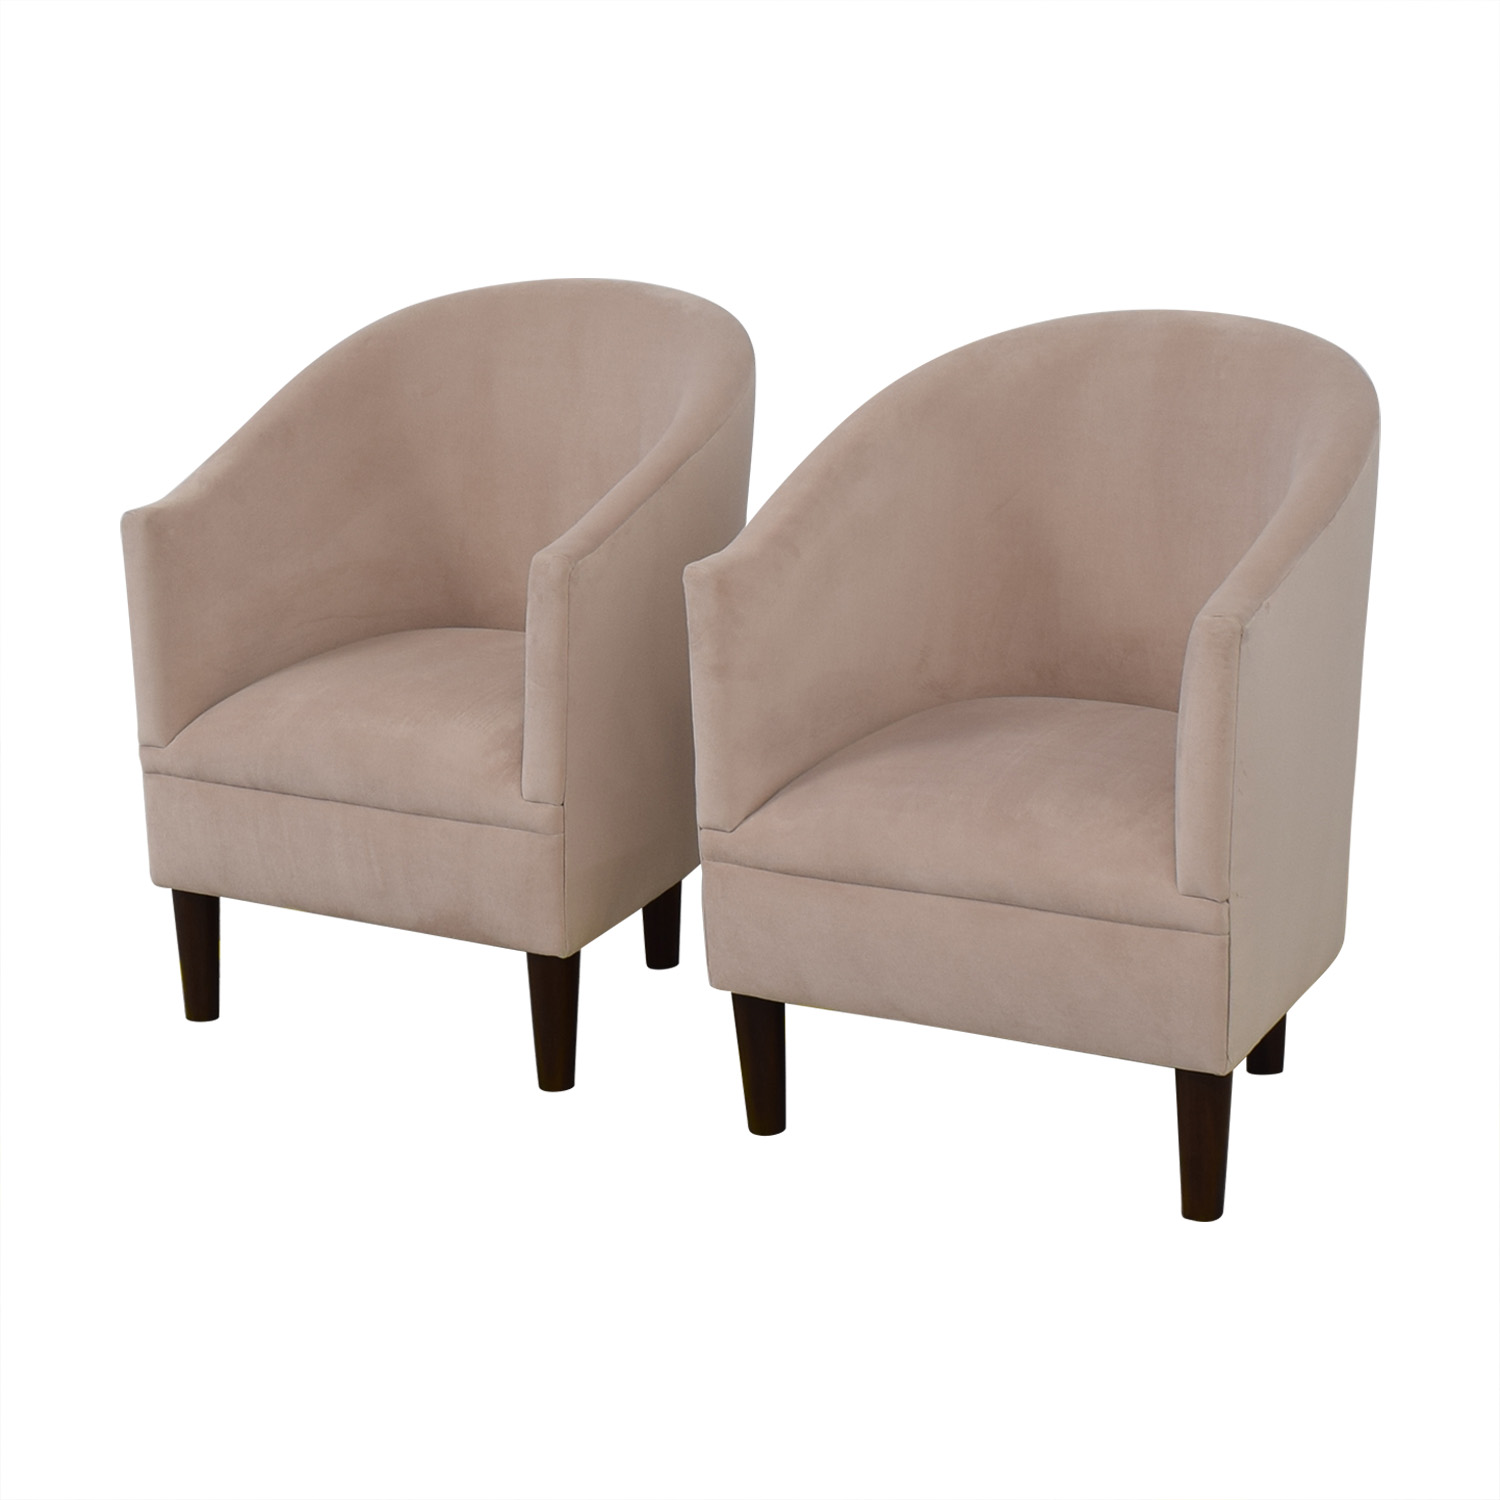 buy Skyline Furniture Tub Club Chairs Skyline Furniture